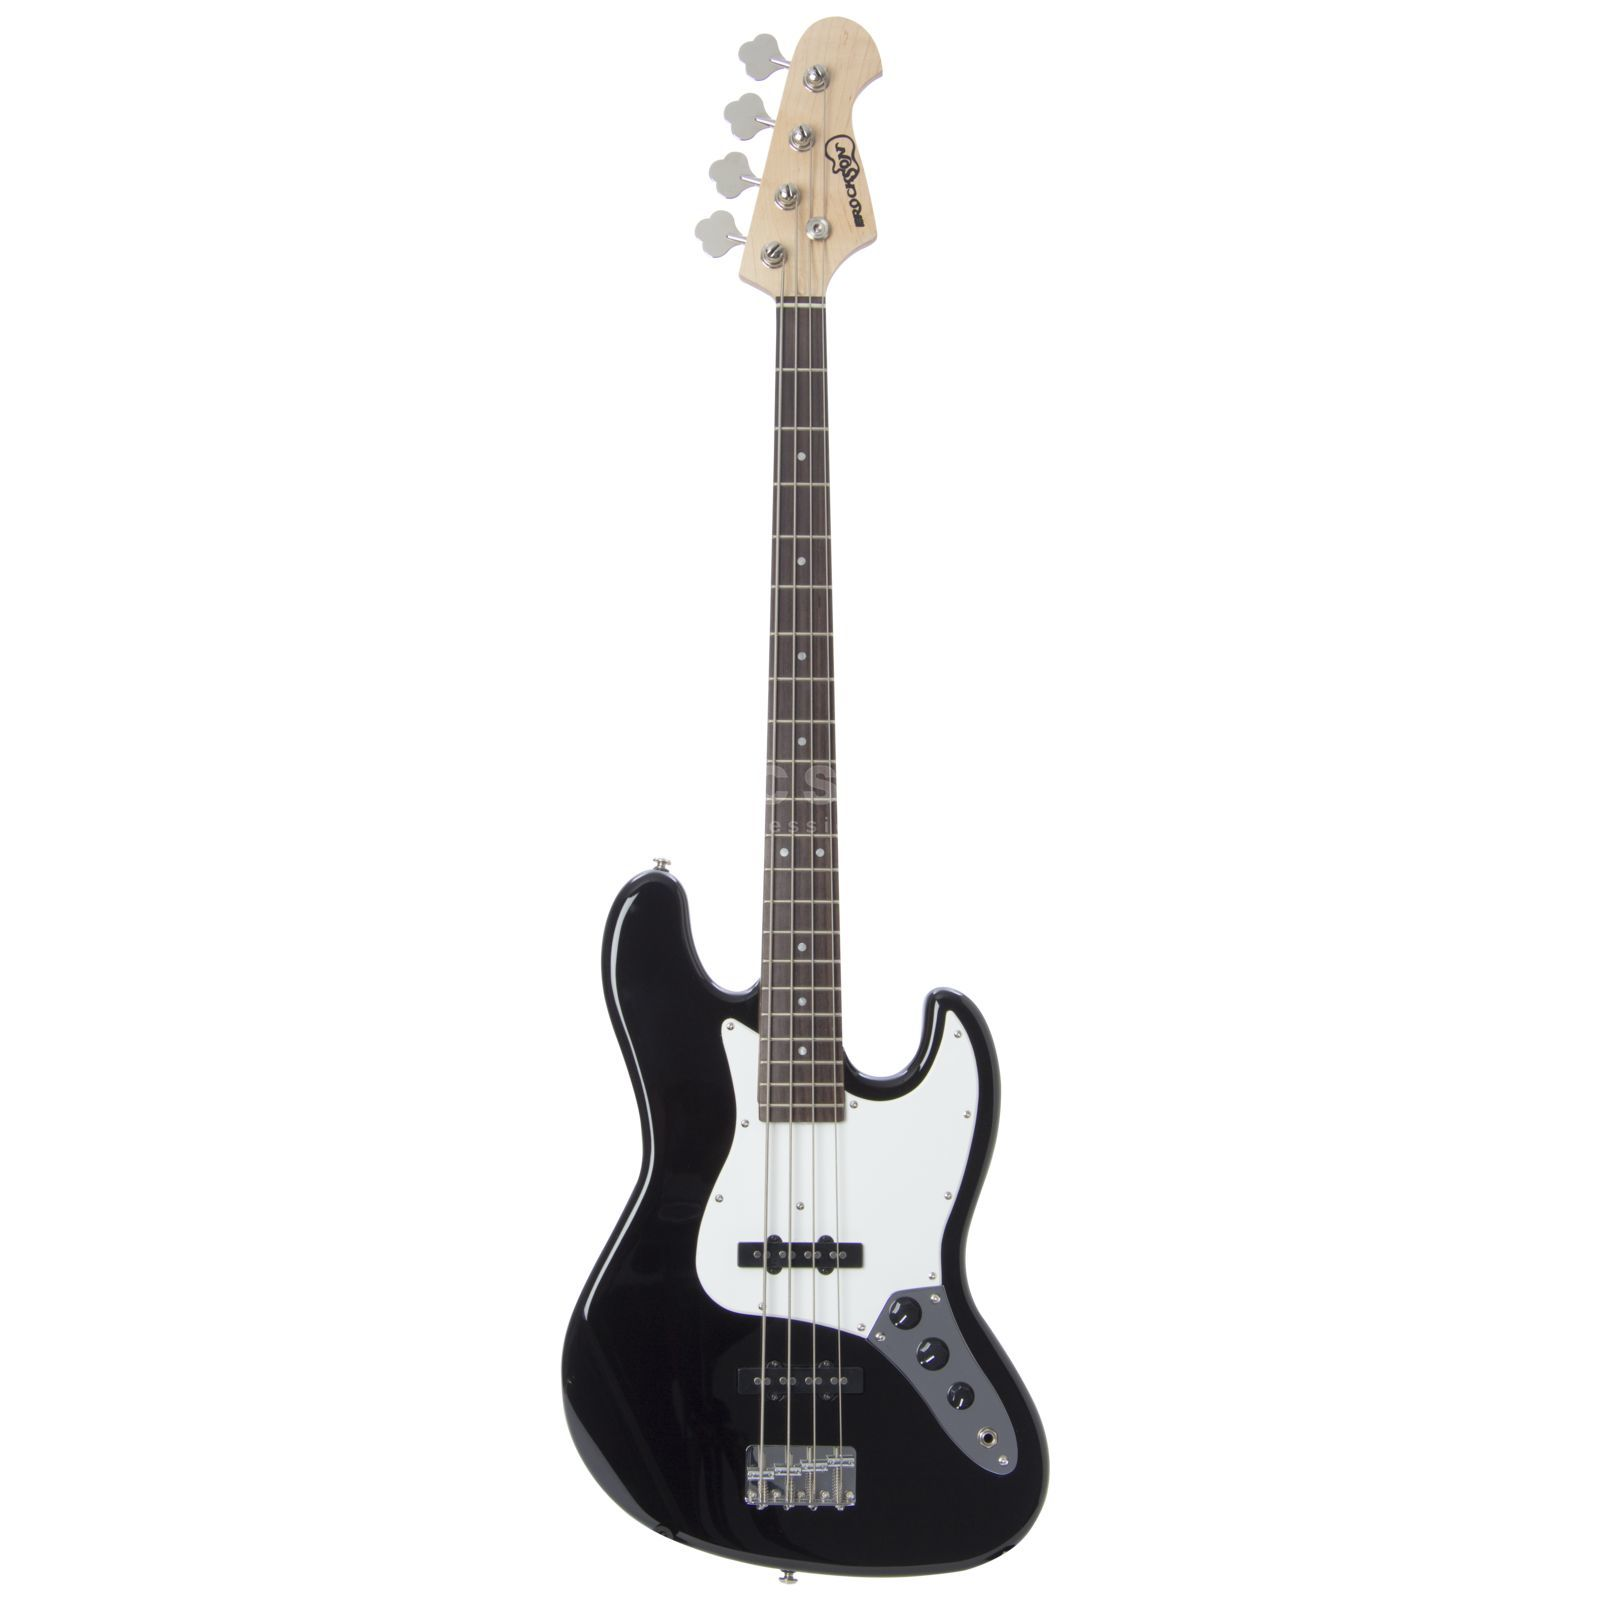 Rockson R-JB99 BK 4-String E-Bass Guitar, Black High gloss Produktbillede